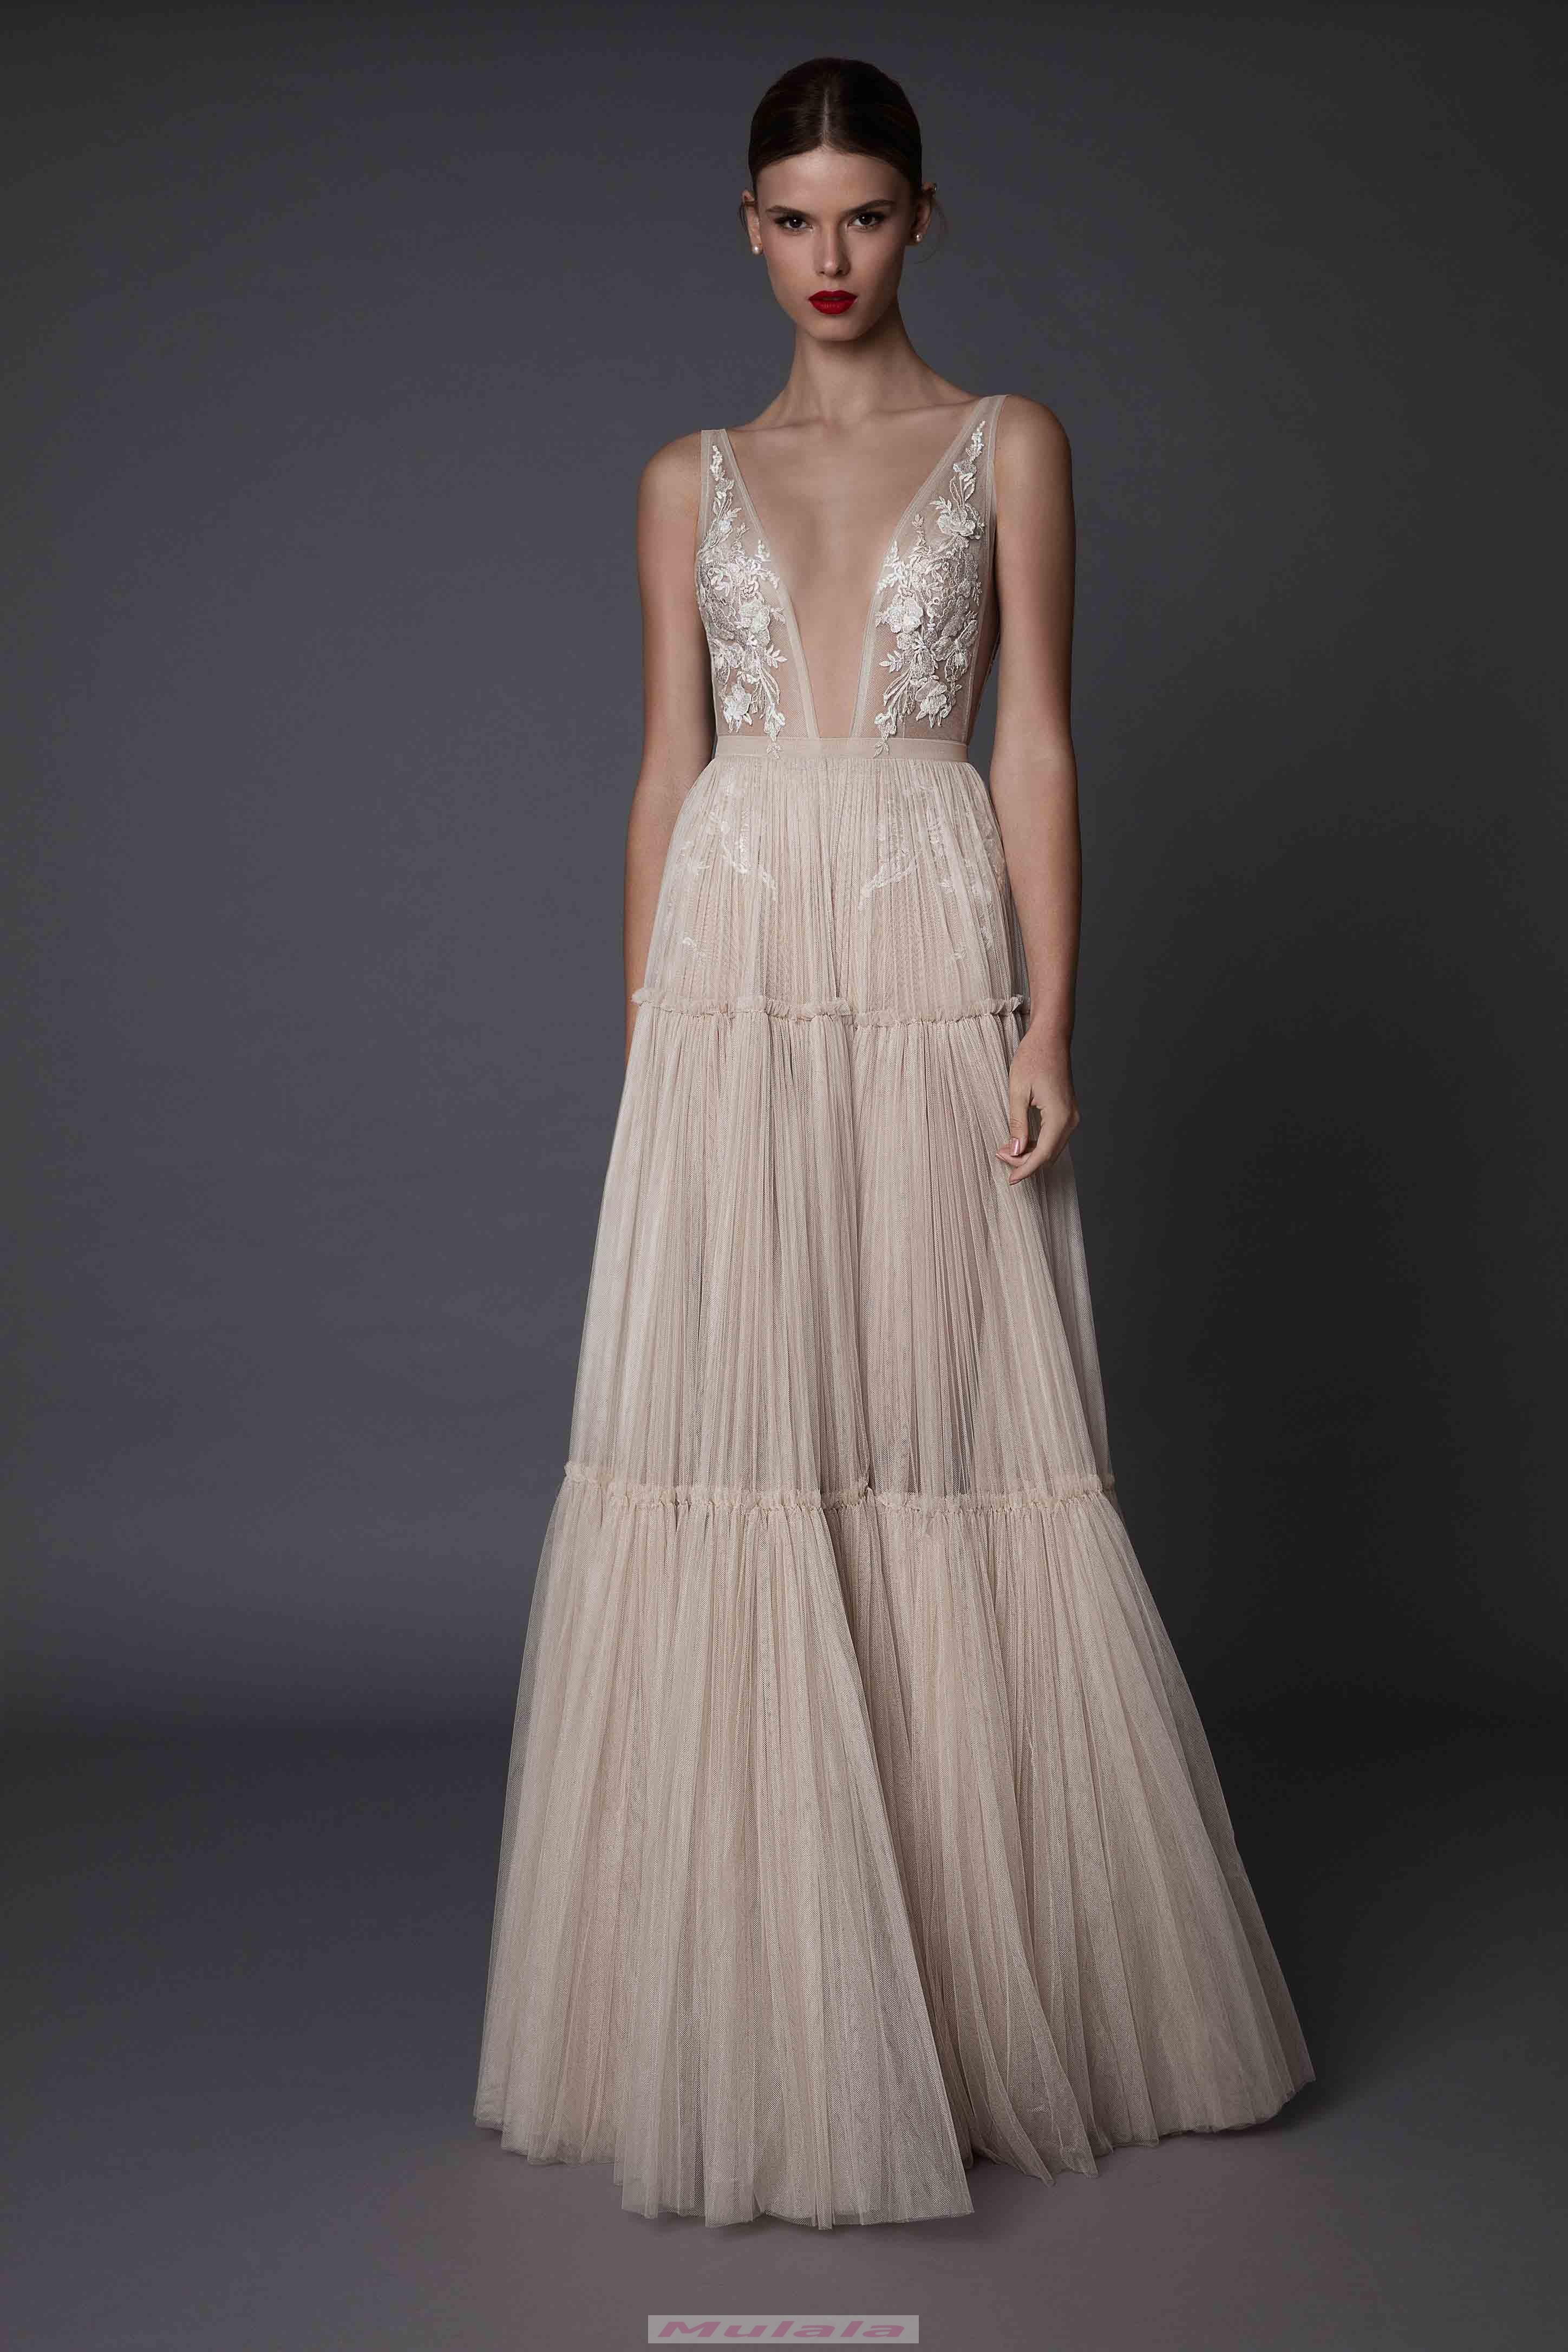 16a9c9b770c Champagne Tulle Tiered Prom Dresses Berta 2018 Sexy Deep V Neck Backless Evening  Dress Lace Appliques